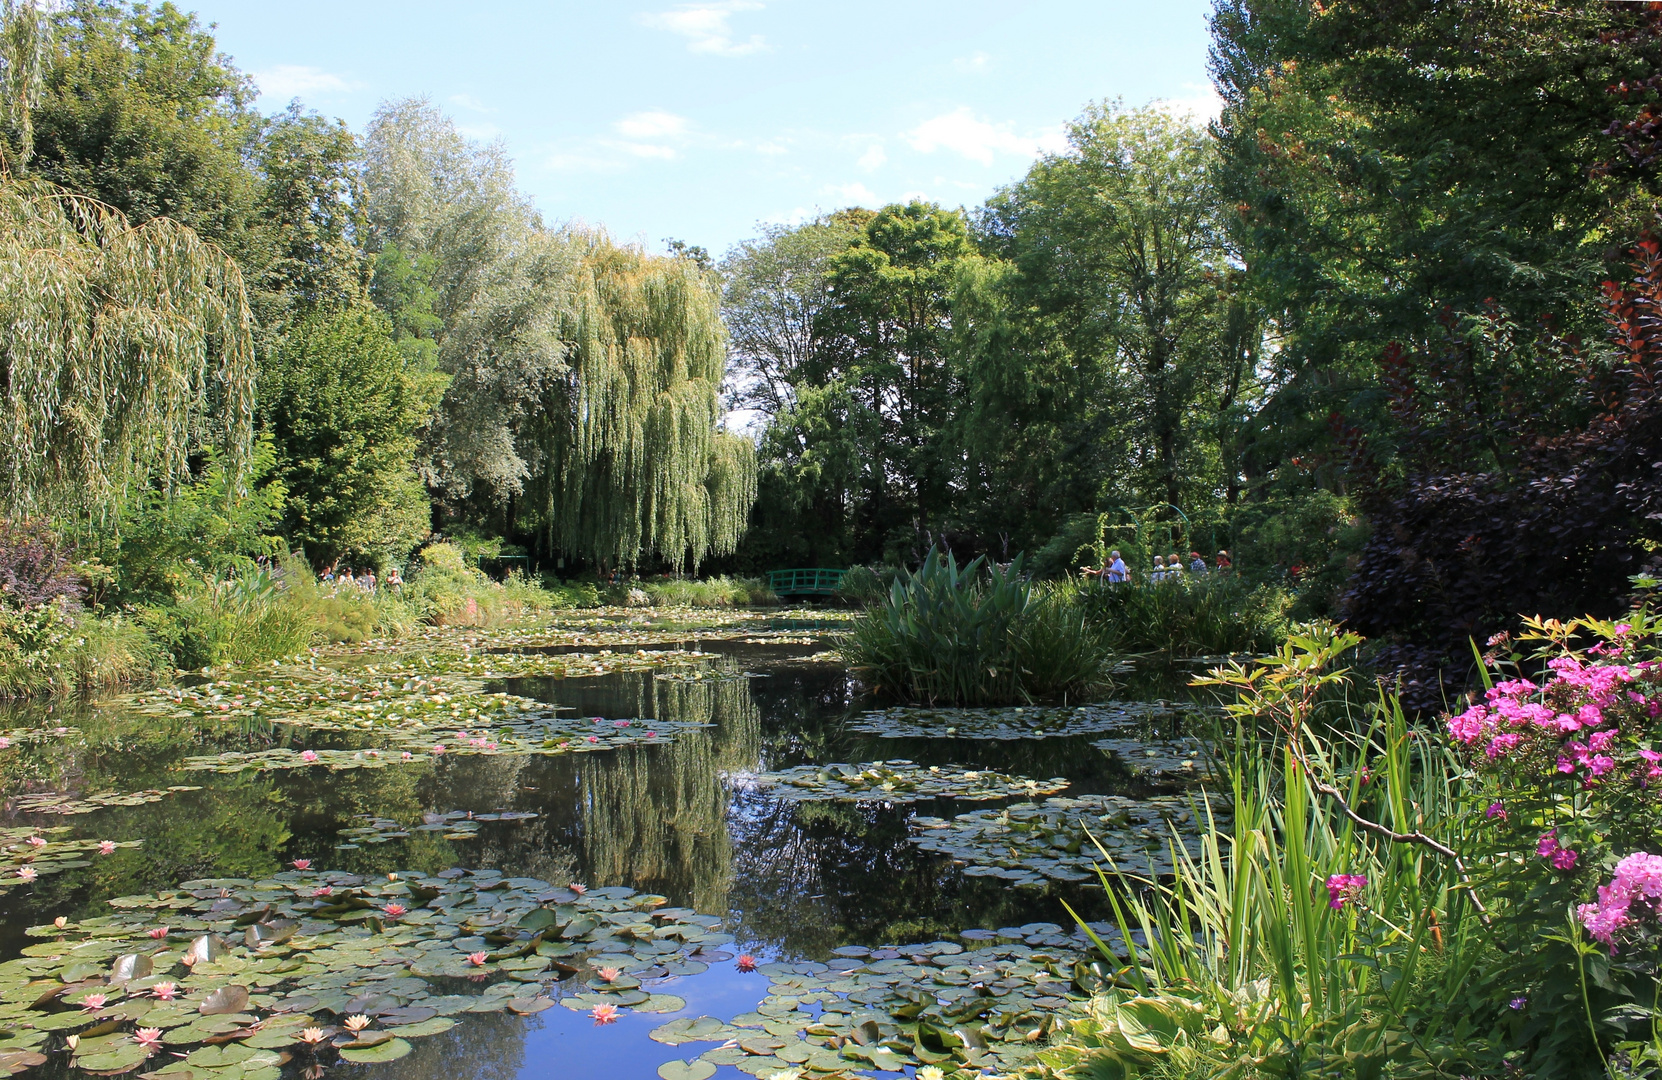 garten von claude monet in giverny normandie foto bild europe france normandie bilder auf. Black Bedroom Furniture Sets. Home Design Ideas